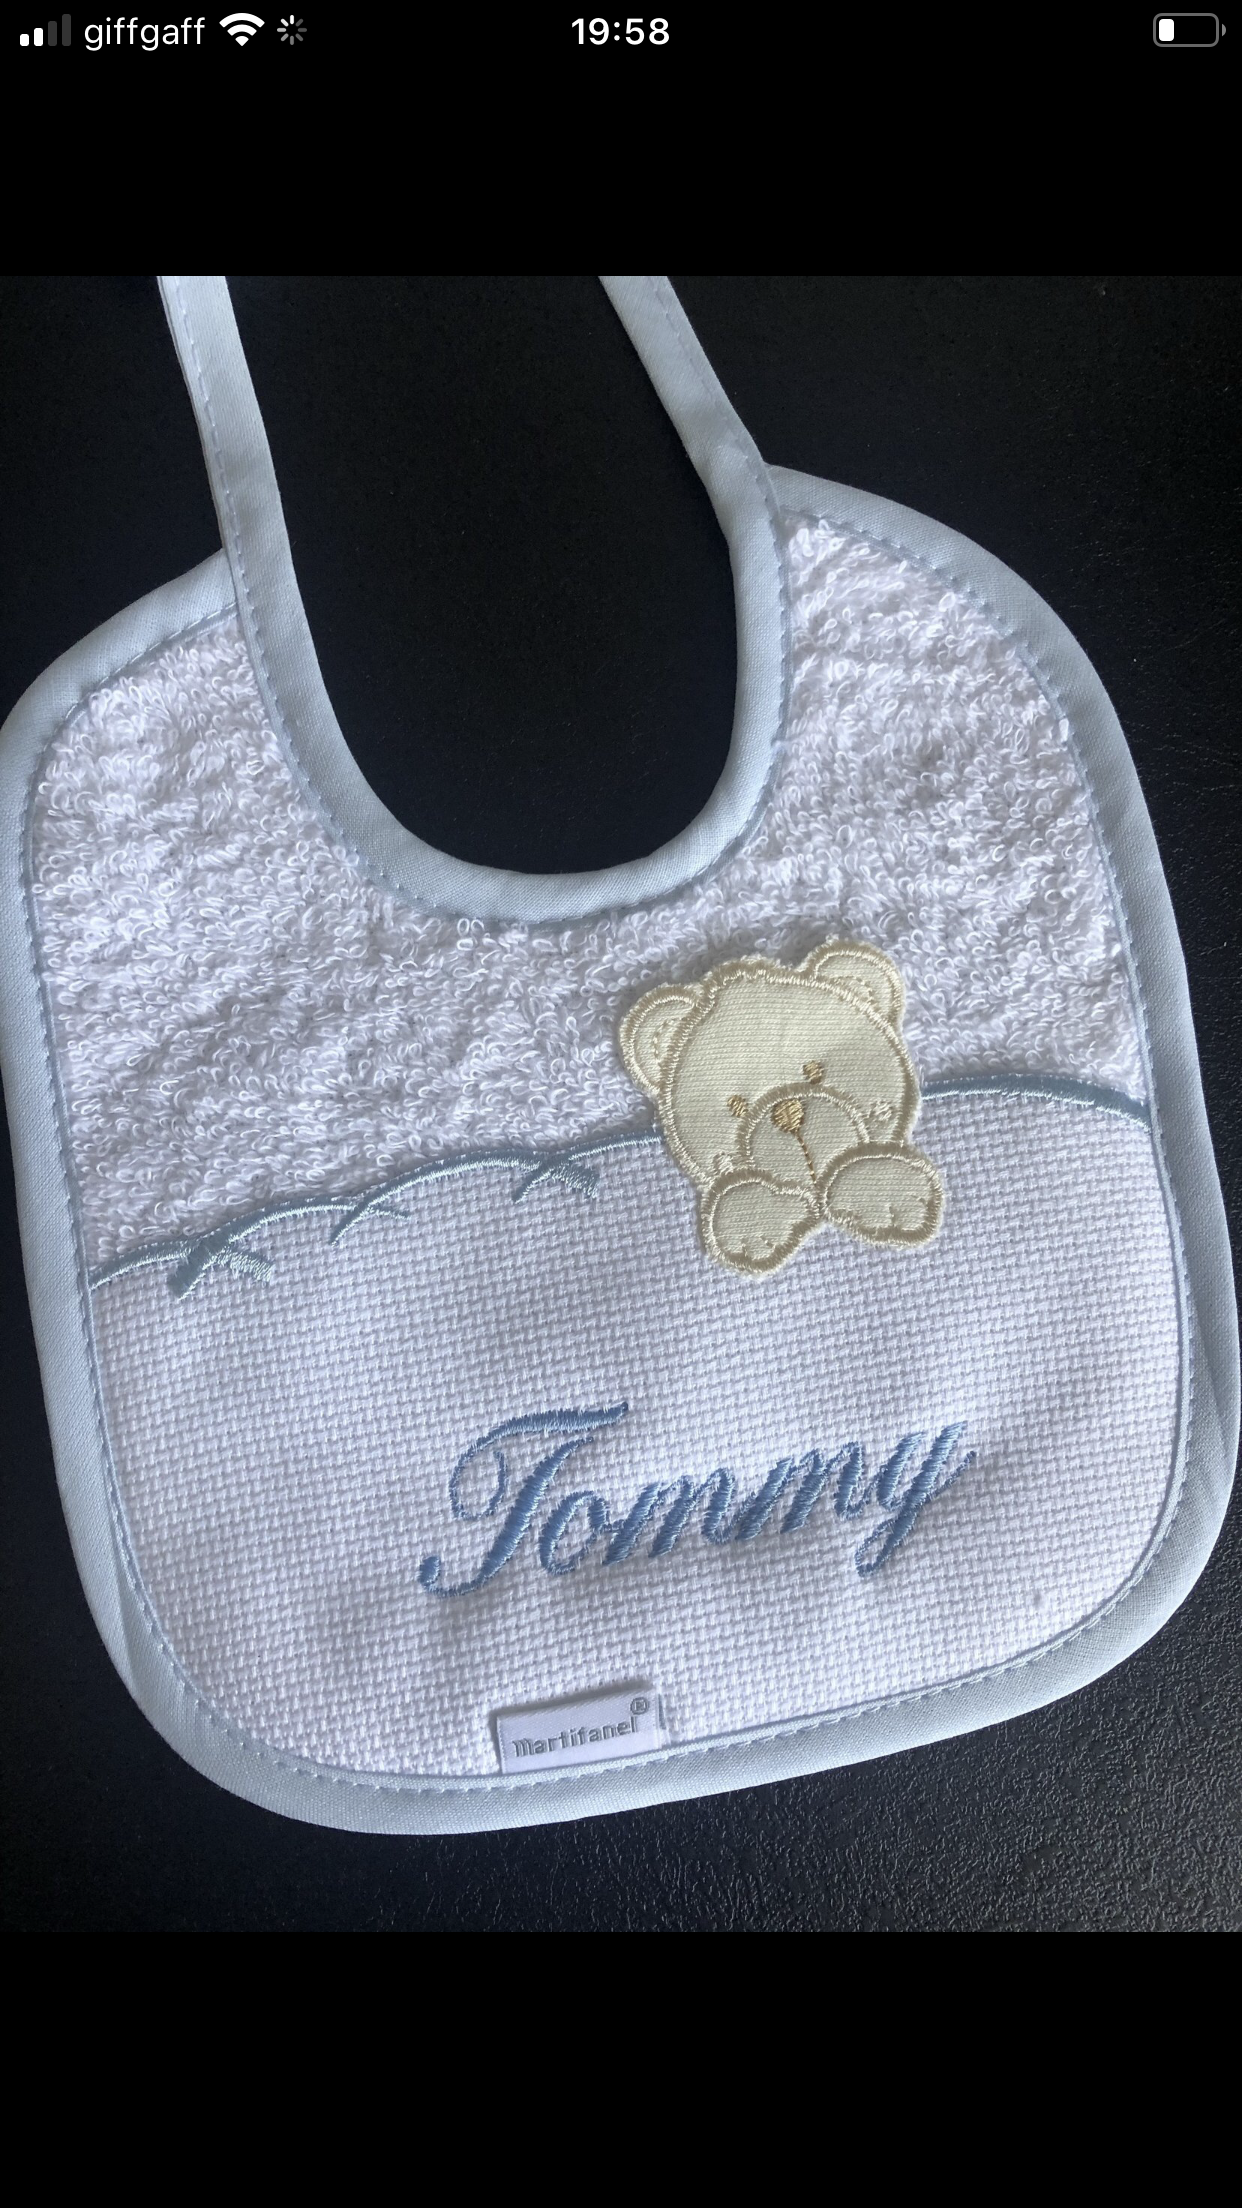 Teddy detailed bibs personalised with a small name